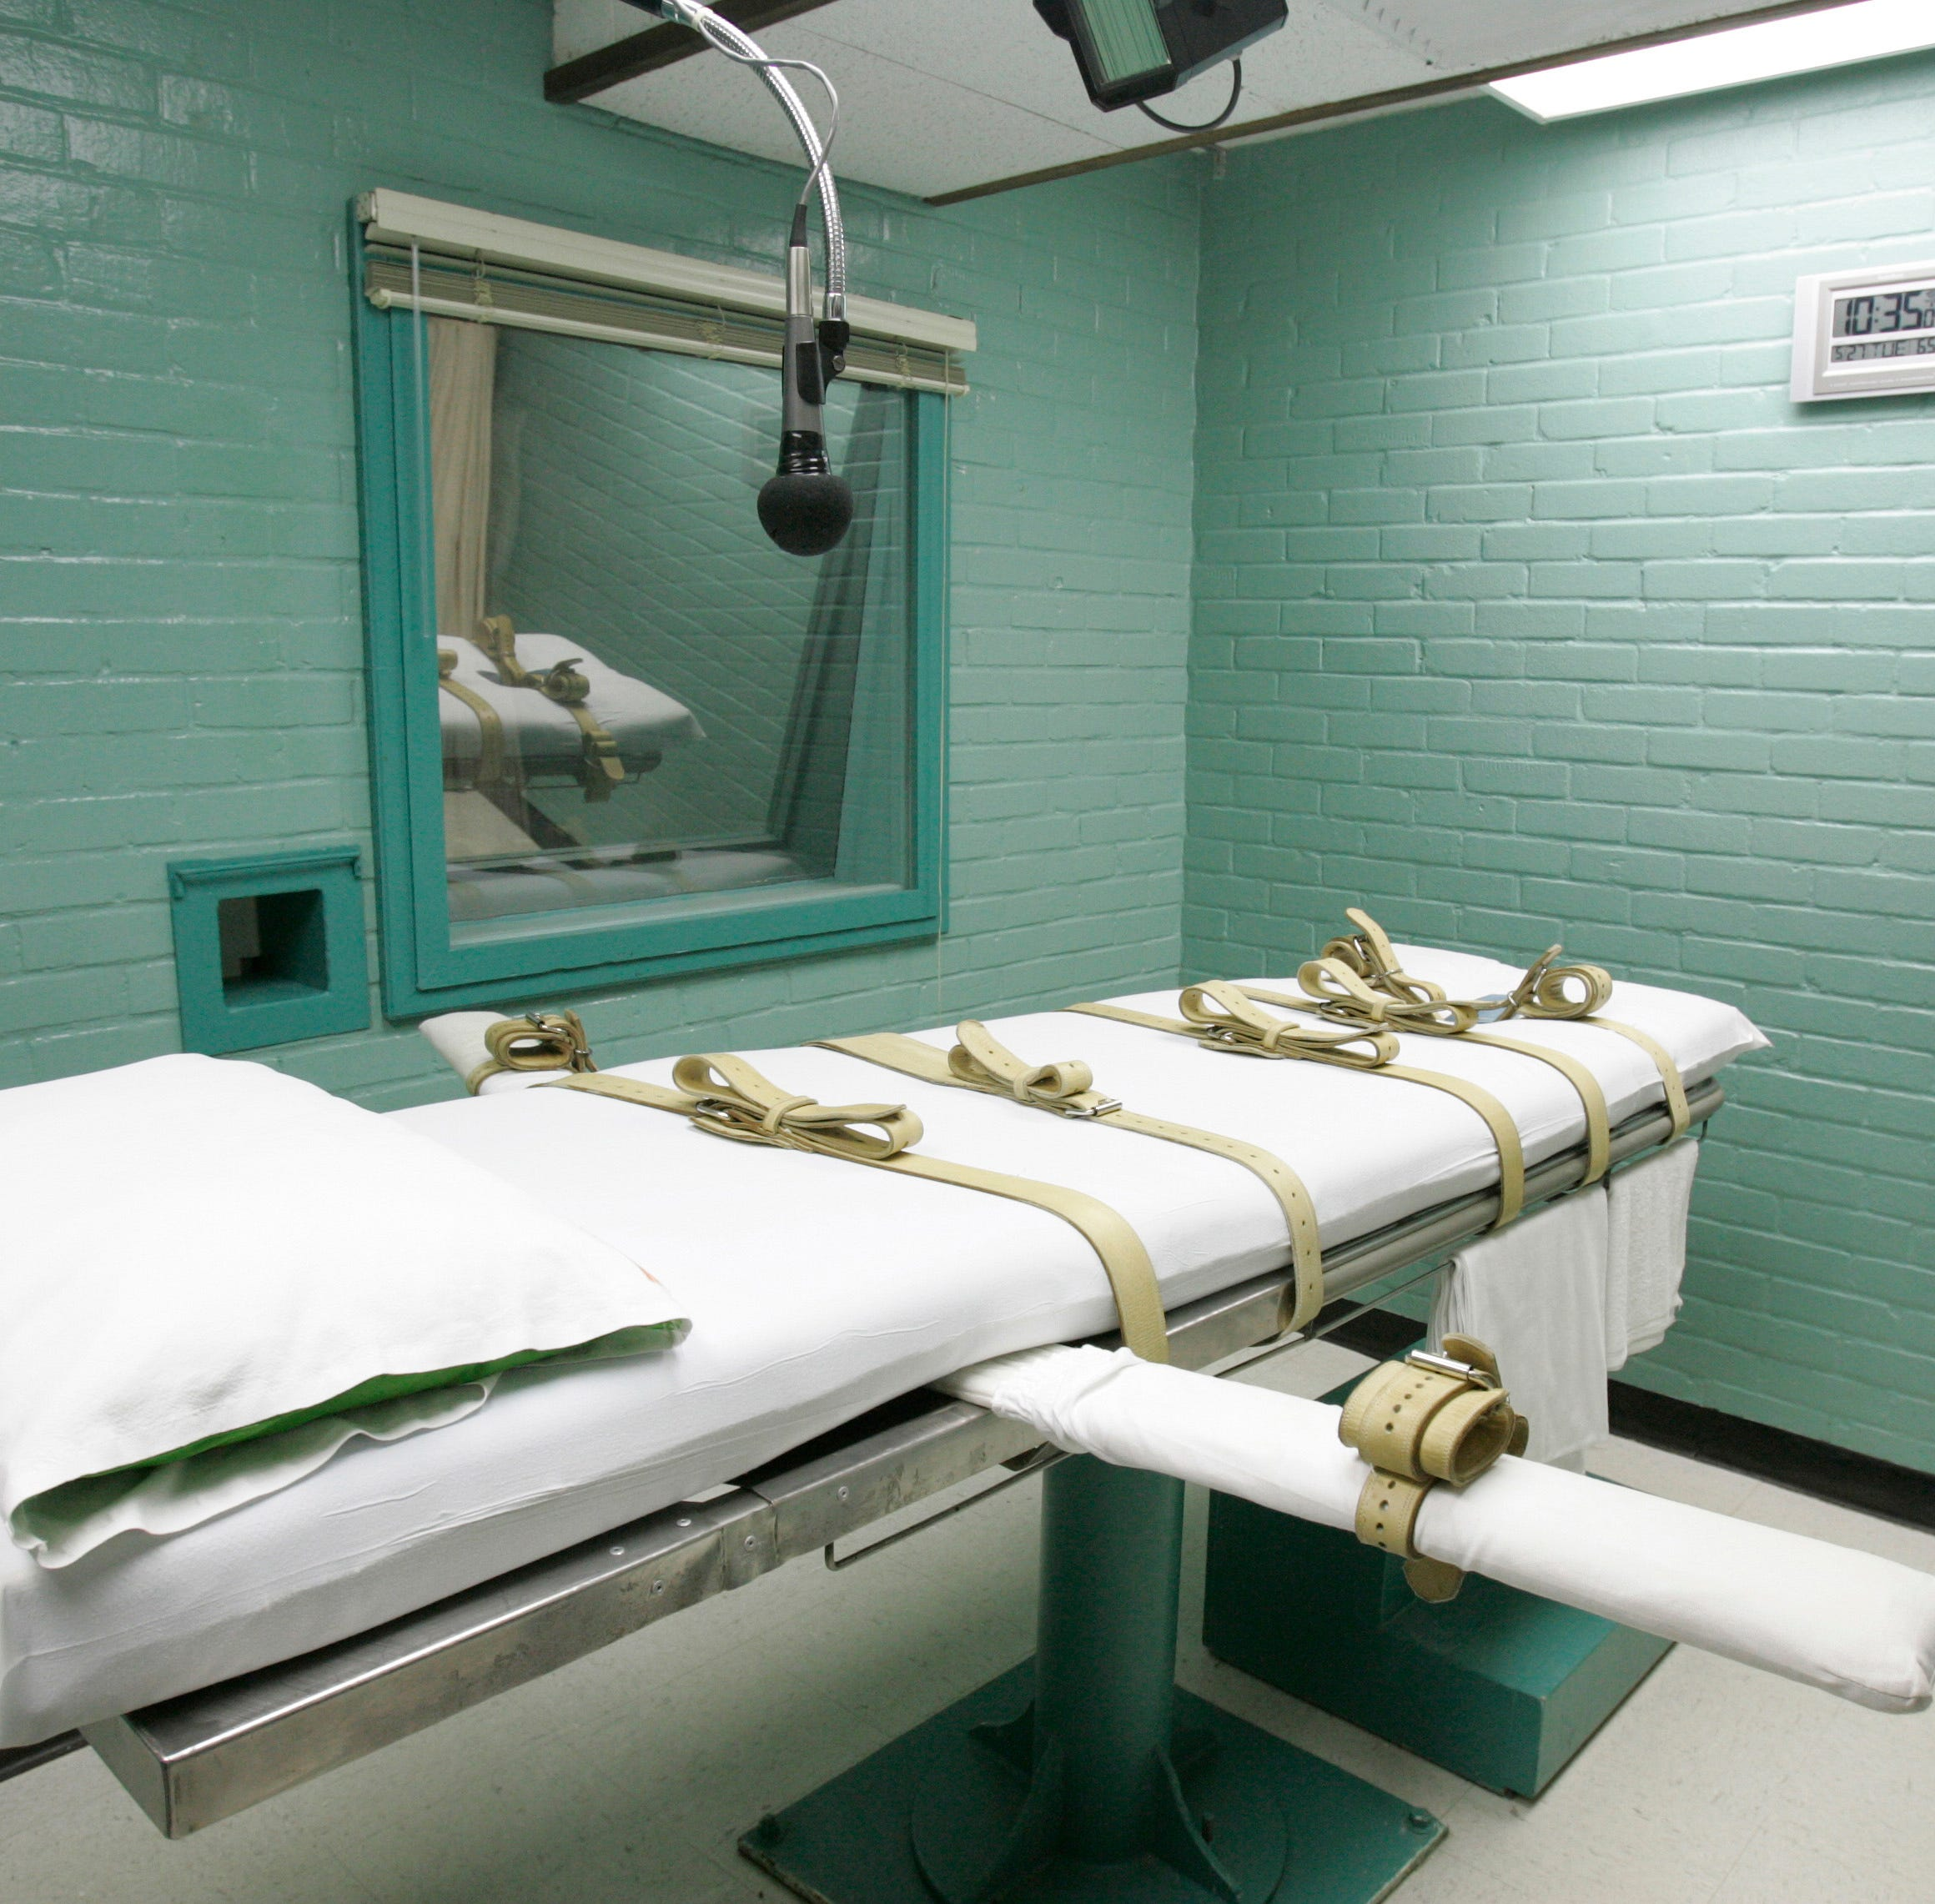 Death penalty stays in Louisiana